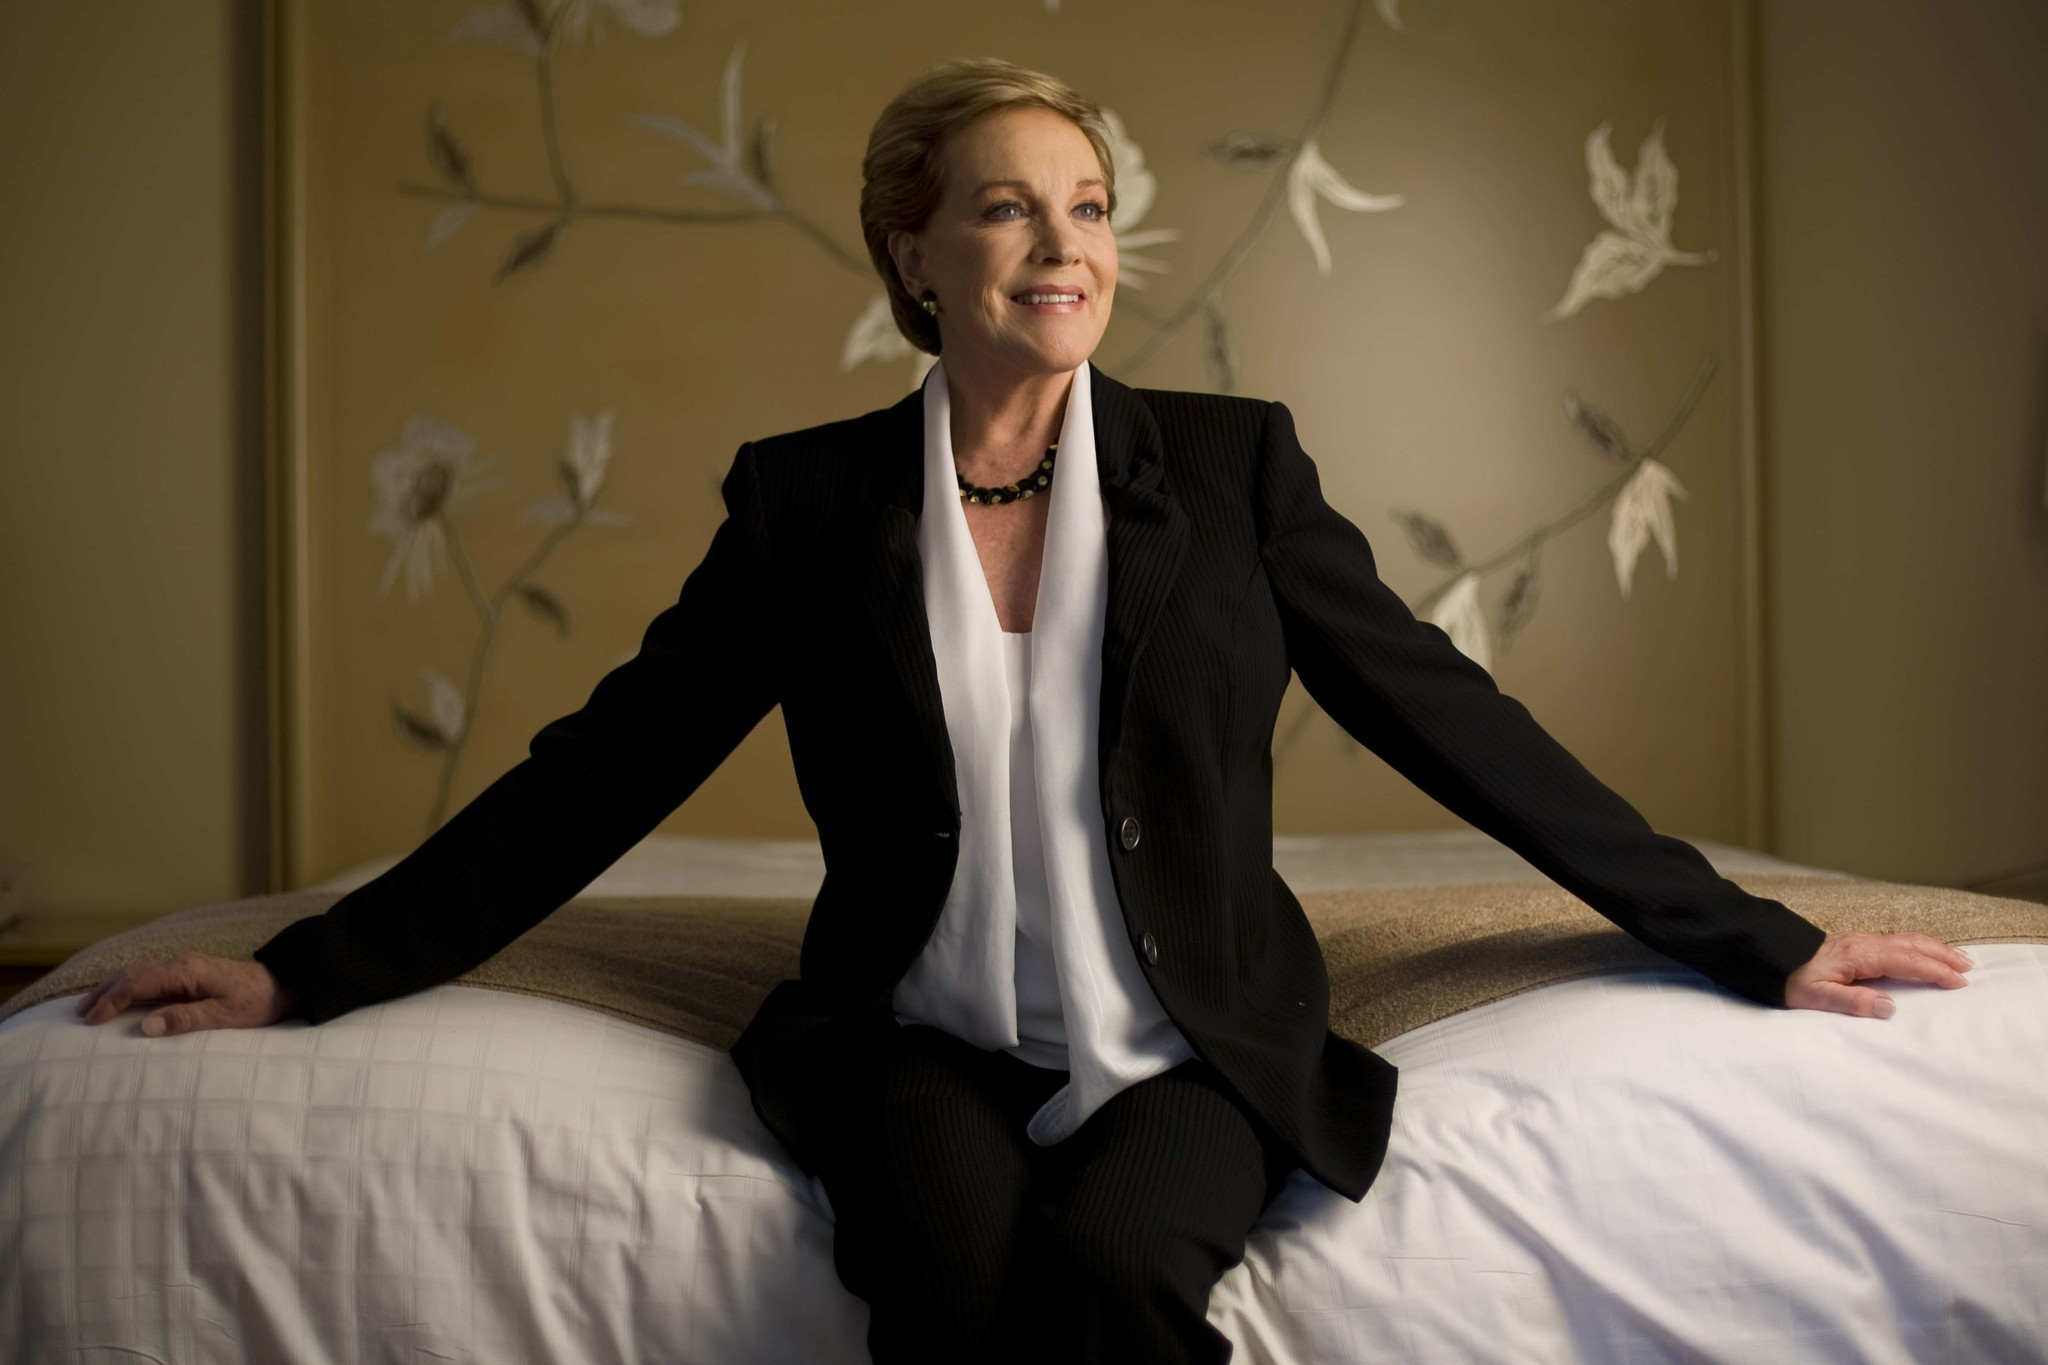 Pictures: Cruise ship godmothers - Julie Andrews